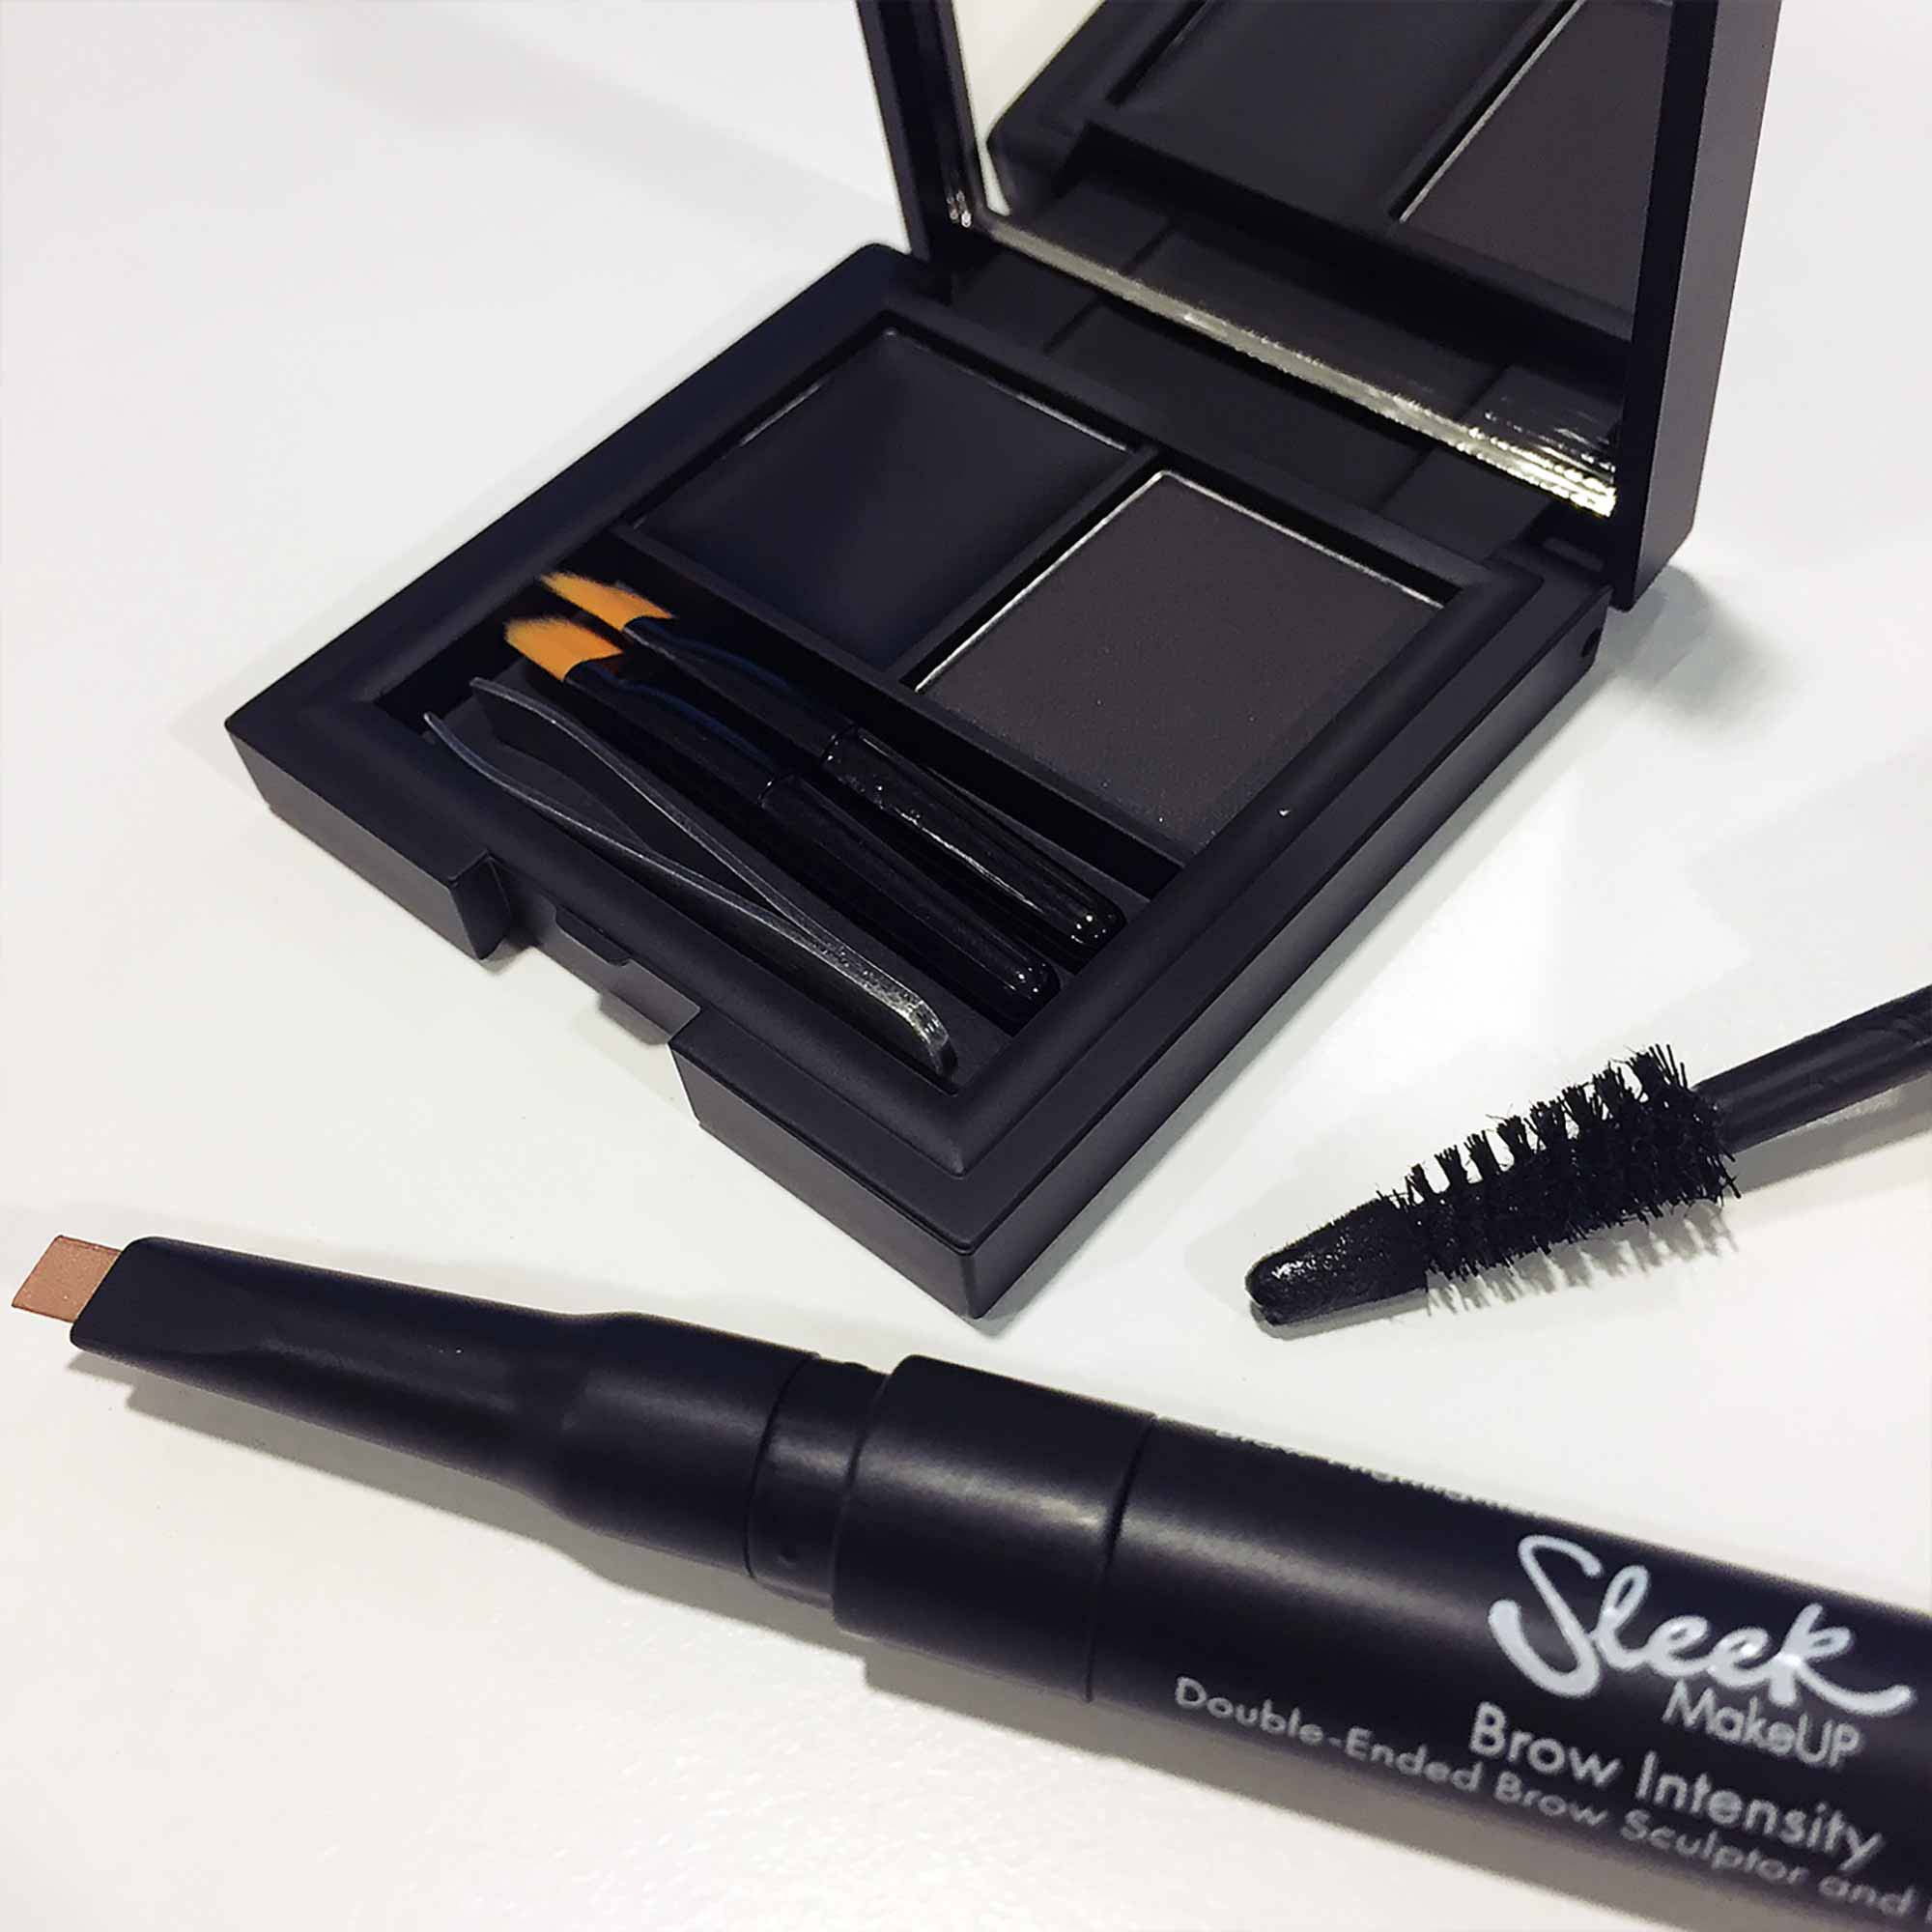 Brow Intensity Brow Kit Sleek Makeup Collection